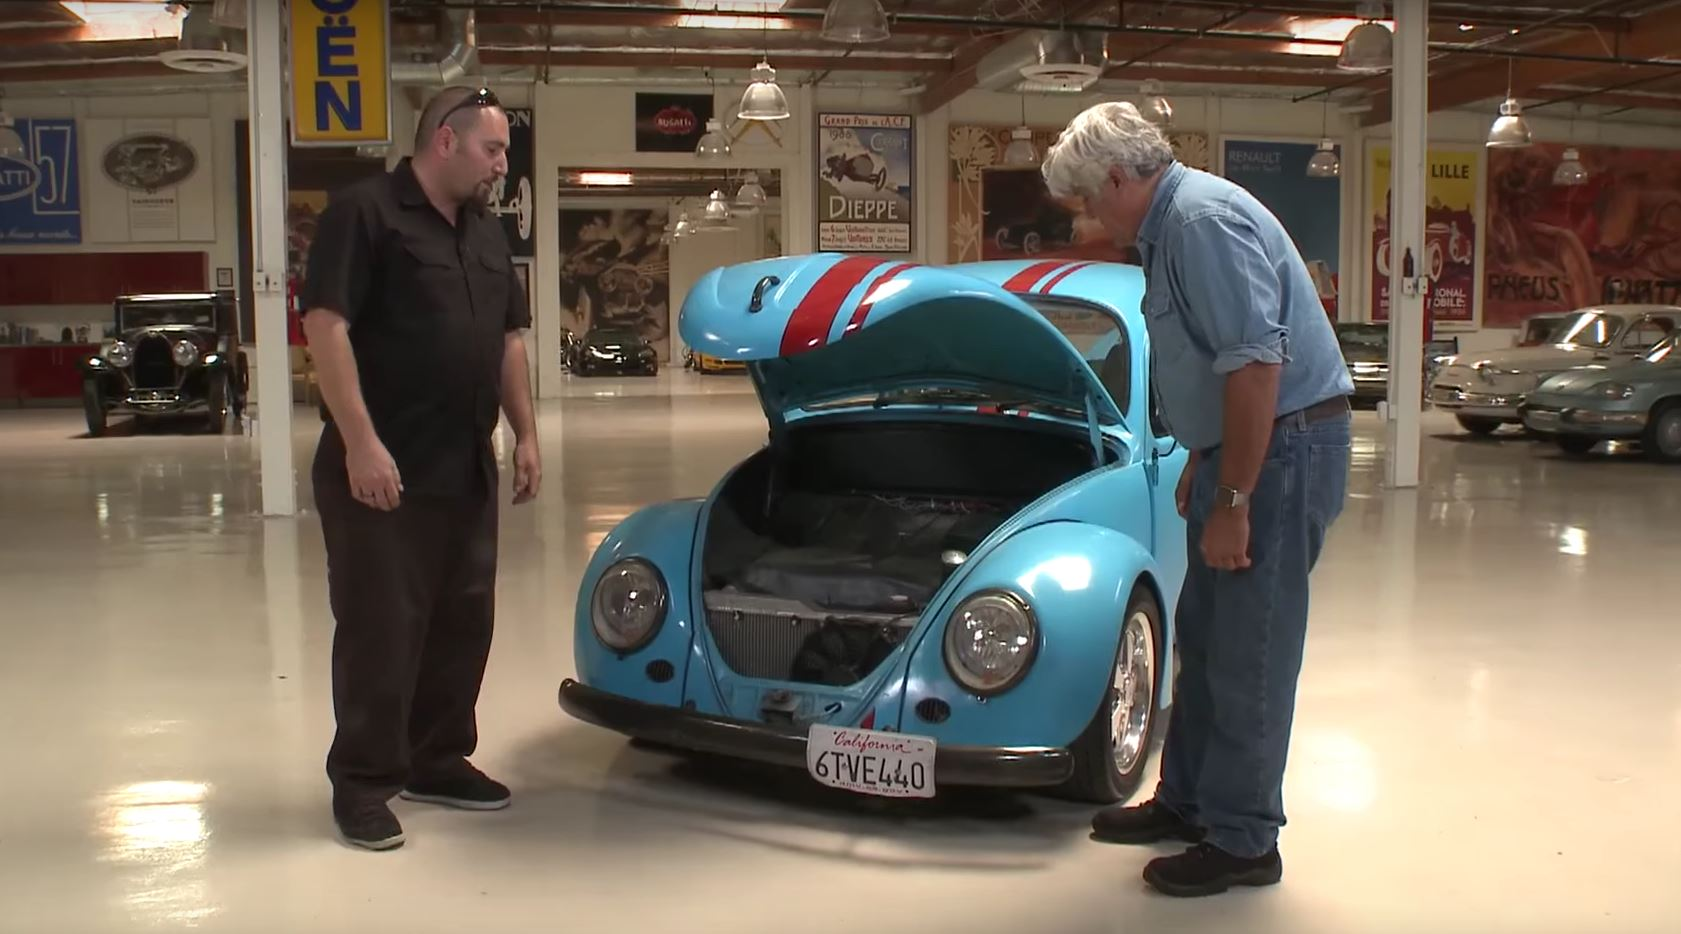 Jay Leno Checks out VW Beetle with RX-7 Rotary Engine